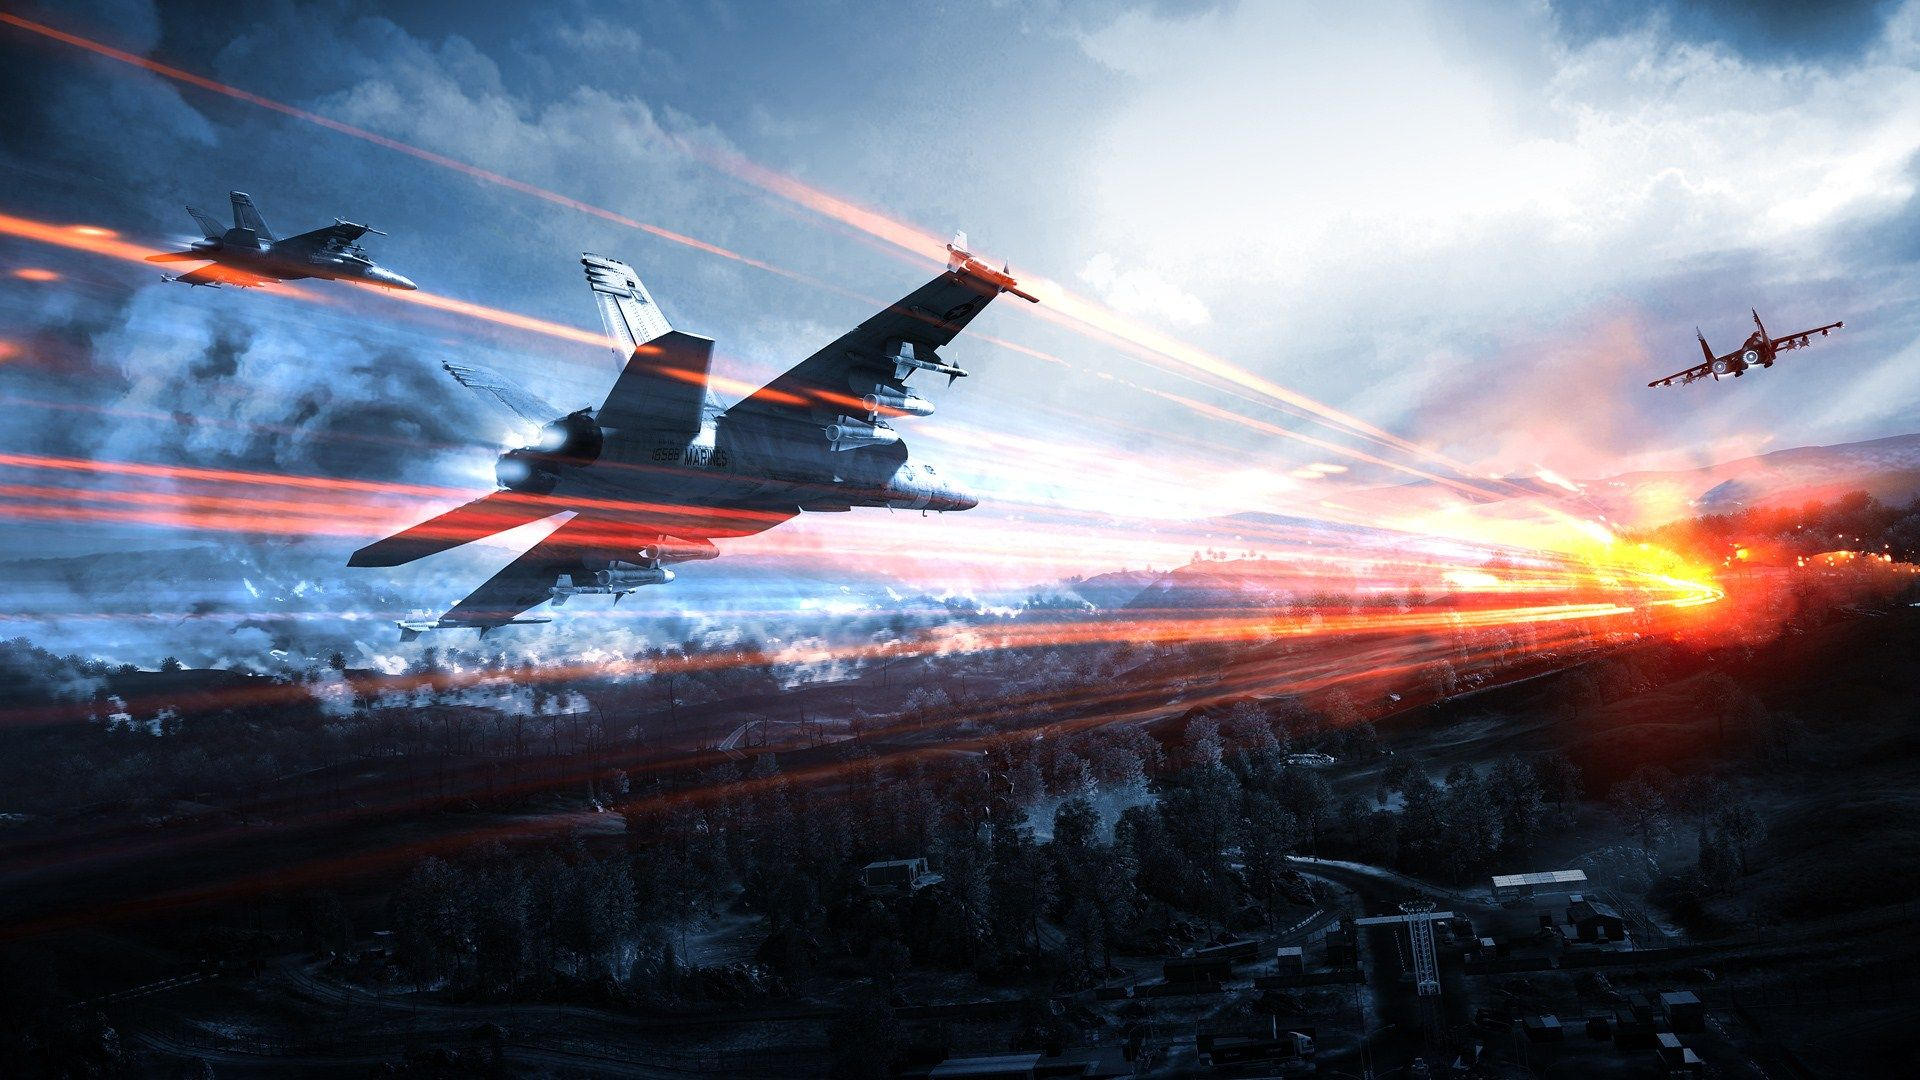 Game Battlefield 3 Fighter Jets Incoming Missiles Wide Hd Wallpaper Wallpapersme Battlefield Hd Wallpaper Fighter Jets